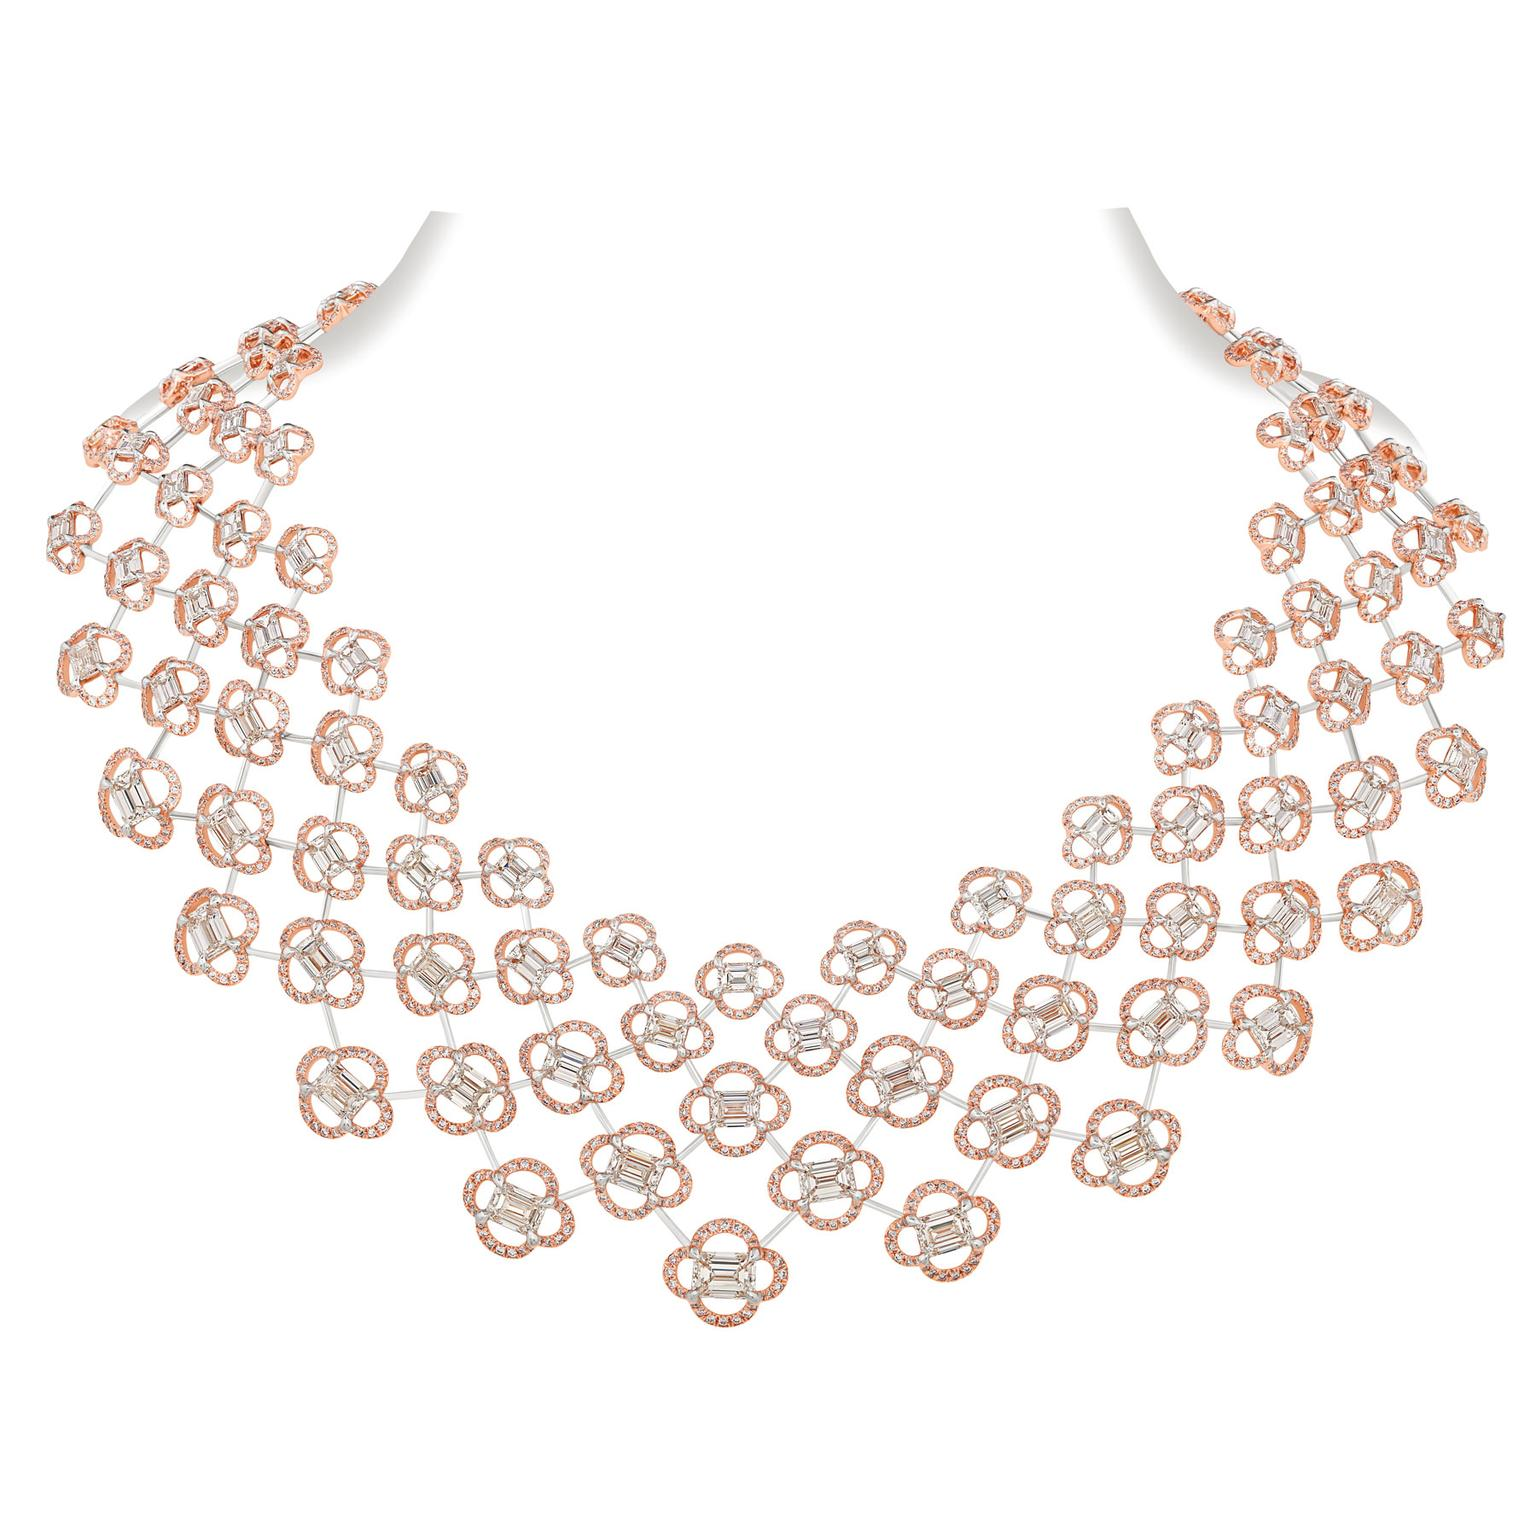 NIRAV MODI Sakura high jewellery diamond necklace